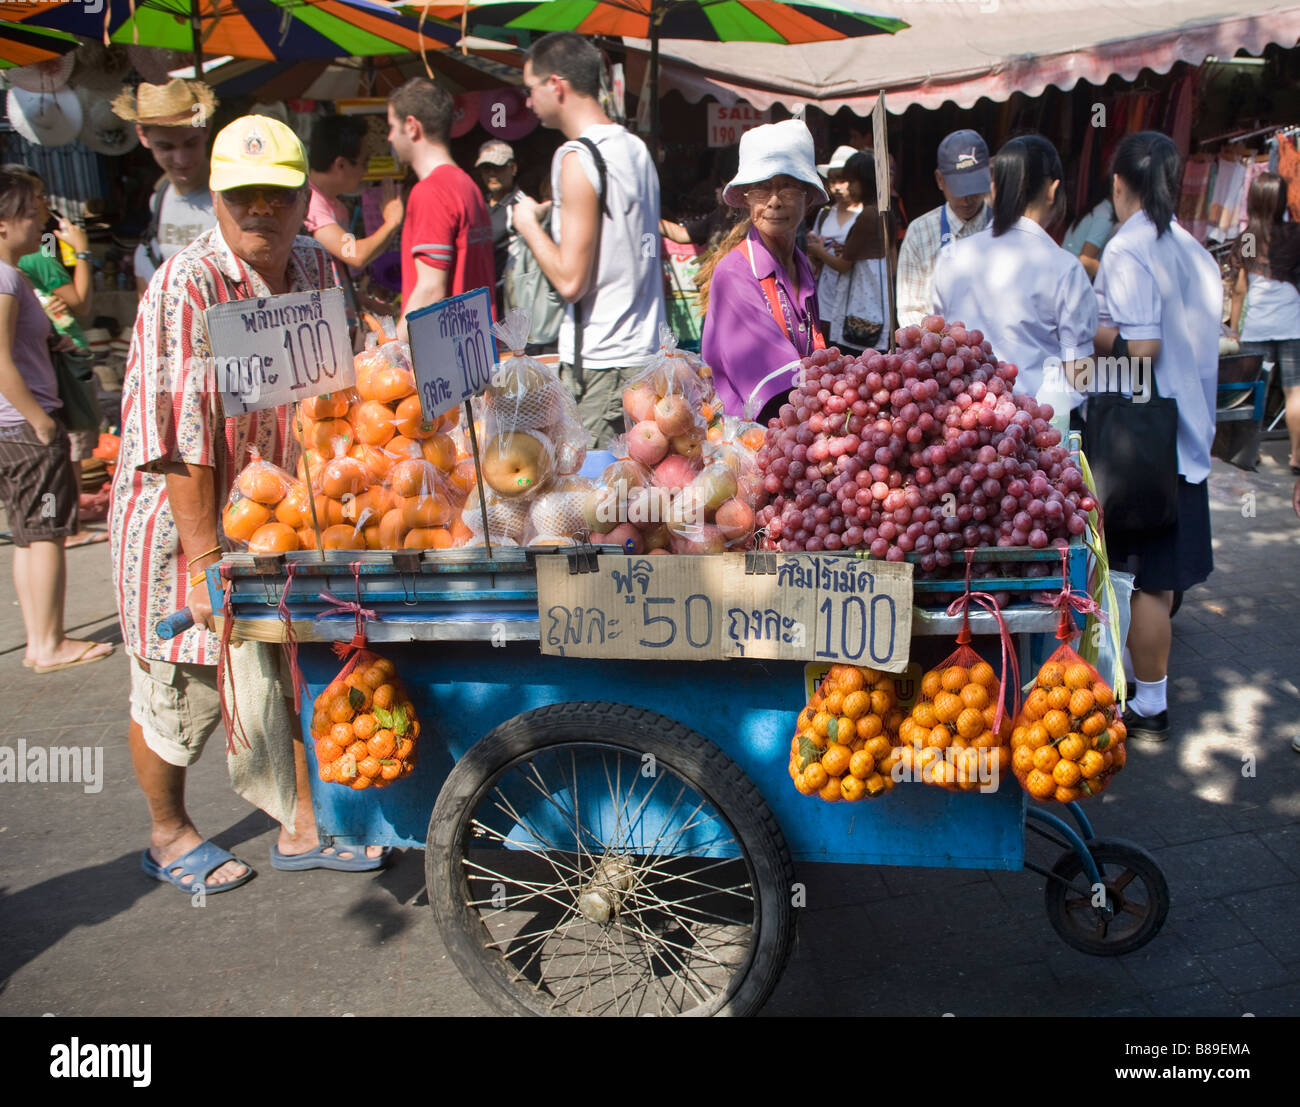 Fruit Stall Chatuchak Weekend Market Bangkok Thailand - Stock Image